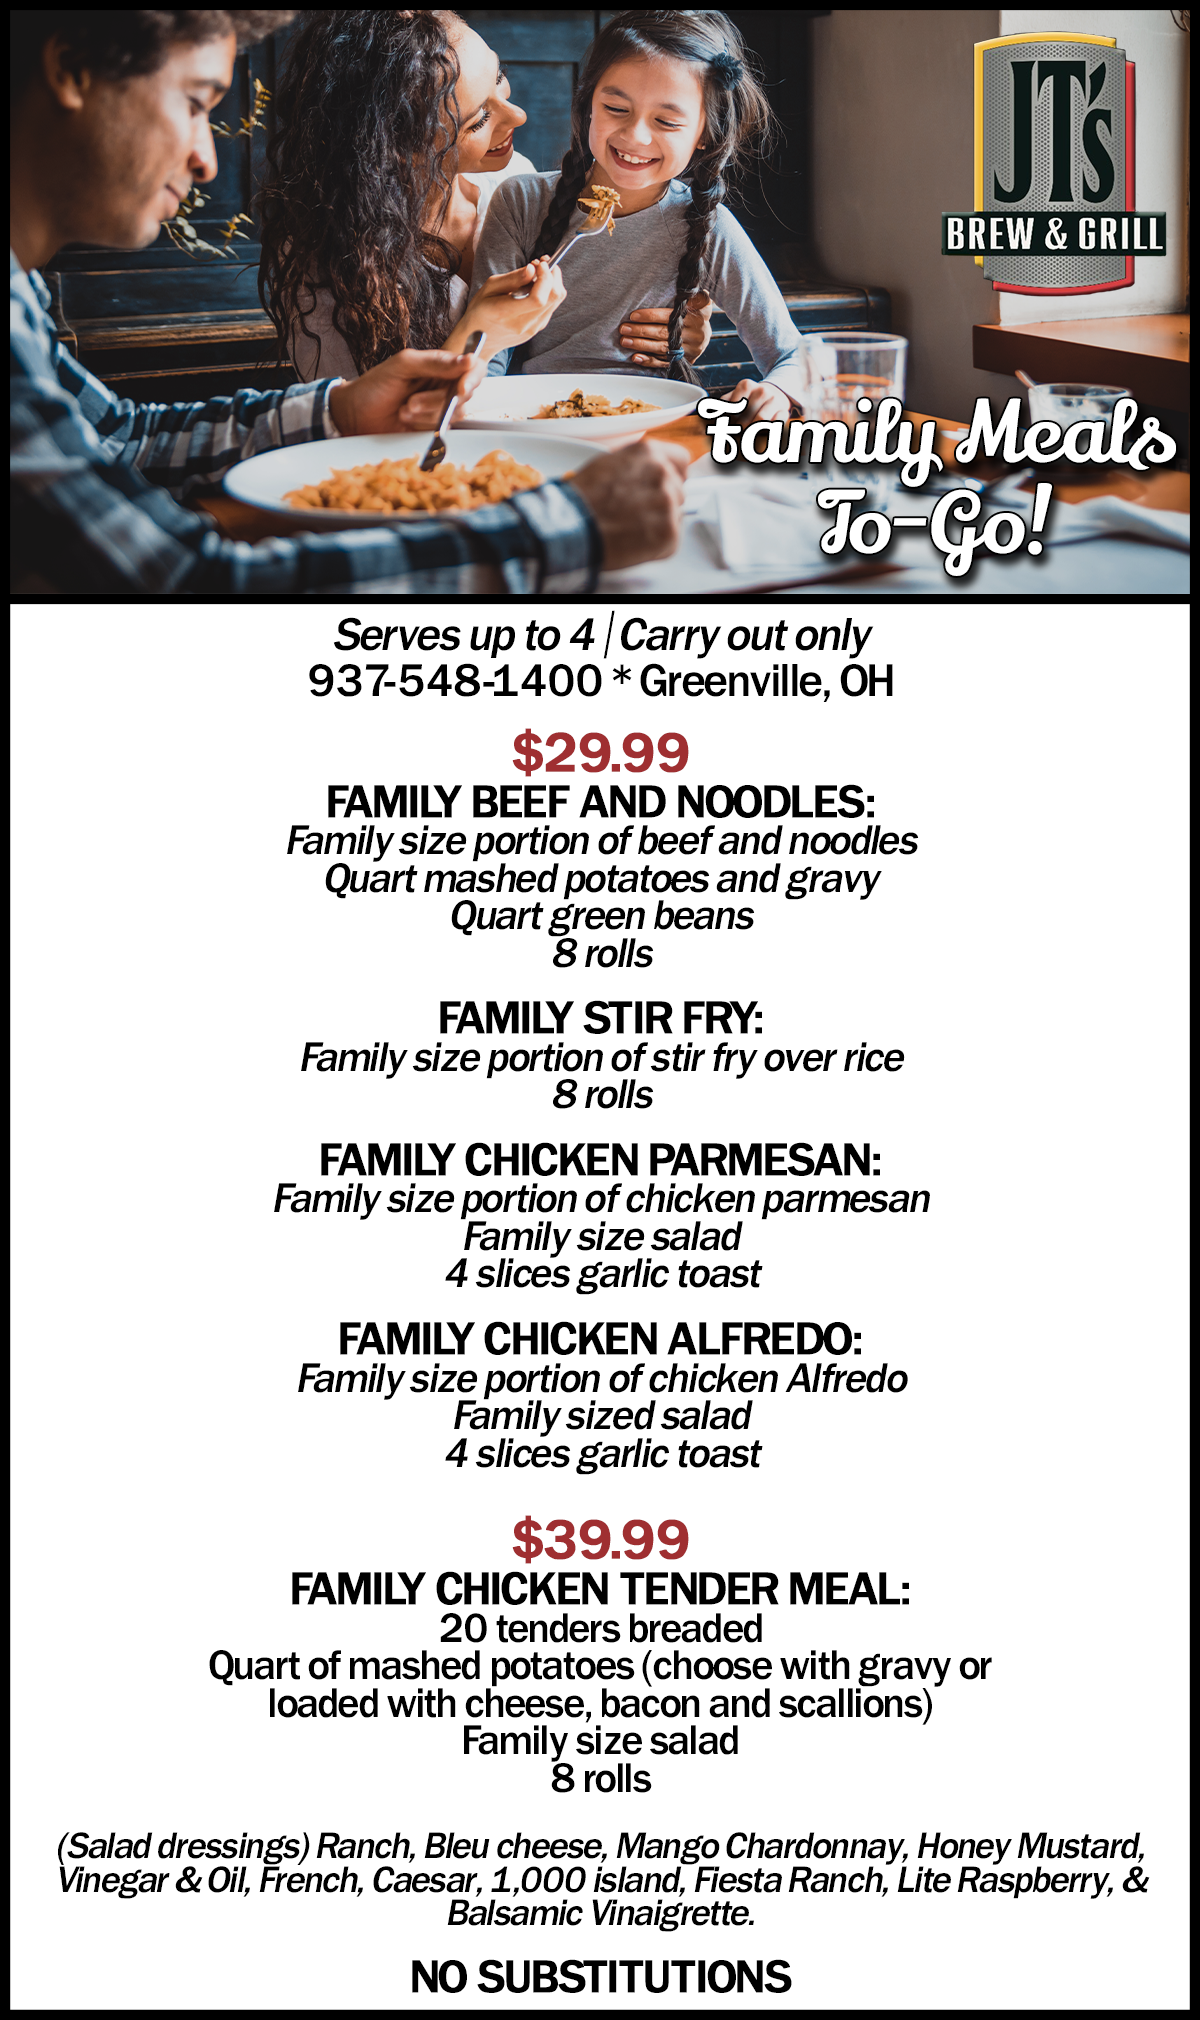 FAMILY SIZE MEALS to Go  Serves up to 4 - Carry out only 419-548-1400 * Greenville, OH  $29.99 FAMILY BEEF AND NOODLES: Family size portion of beef and noodles Quart mashed potatoes and gravy Quart green beans 8 rolls  FAMILY STIR FRY: Family size portion of stir fry over rice 8 rolls  FAMILY CHICKEN PARMESAN: Family size portion of chicken parmesan Family size salad 4 slices garlic toast  FAMILY CHICKEN ALFREDO: Family size portion of chicken Alfredo Family sized salad 4 slices garlic toast  $39.99 FAMILY CHICKEN TENDER MEAL: 20 tenders breaded  Quart of mashed potatoes (choose with gravy or loaded with cheese, bacon and scallions) Family size salad 8 rolls  (Salad dressings) Ranch, Bleu cheese, Mango Chardonnay, Honey Mustard, Vinegar & Oil, French, Caesar, 1,000 island, Fiesta Ranch, Lite Raspberry, & Balsamic Vinaigrette.   No Substitutions